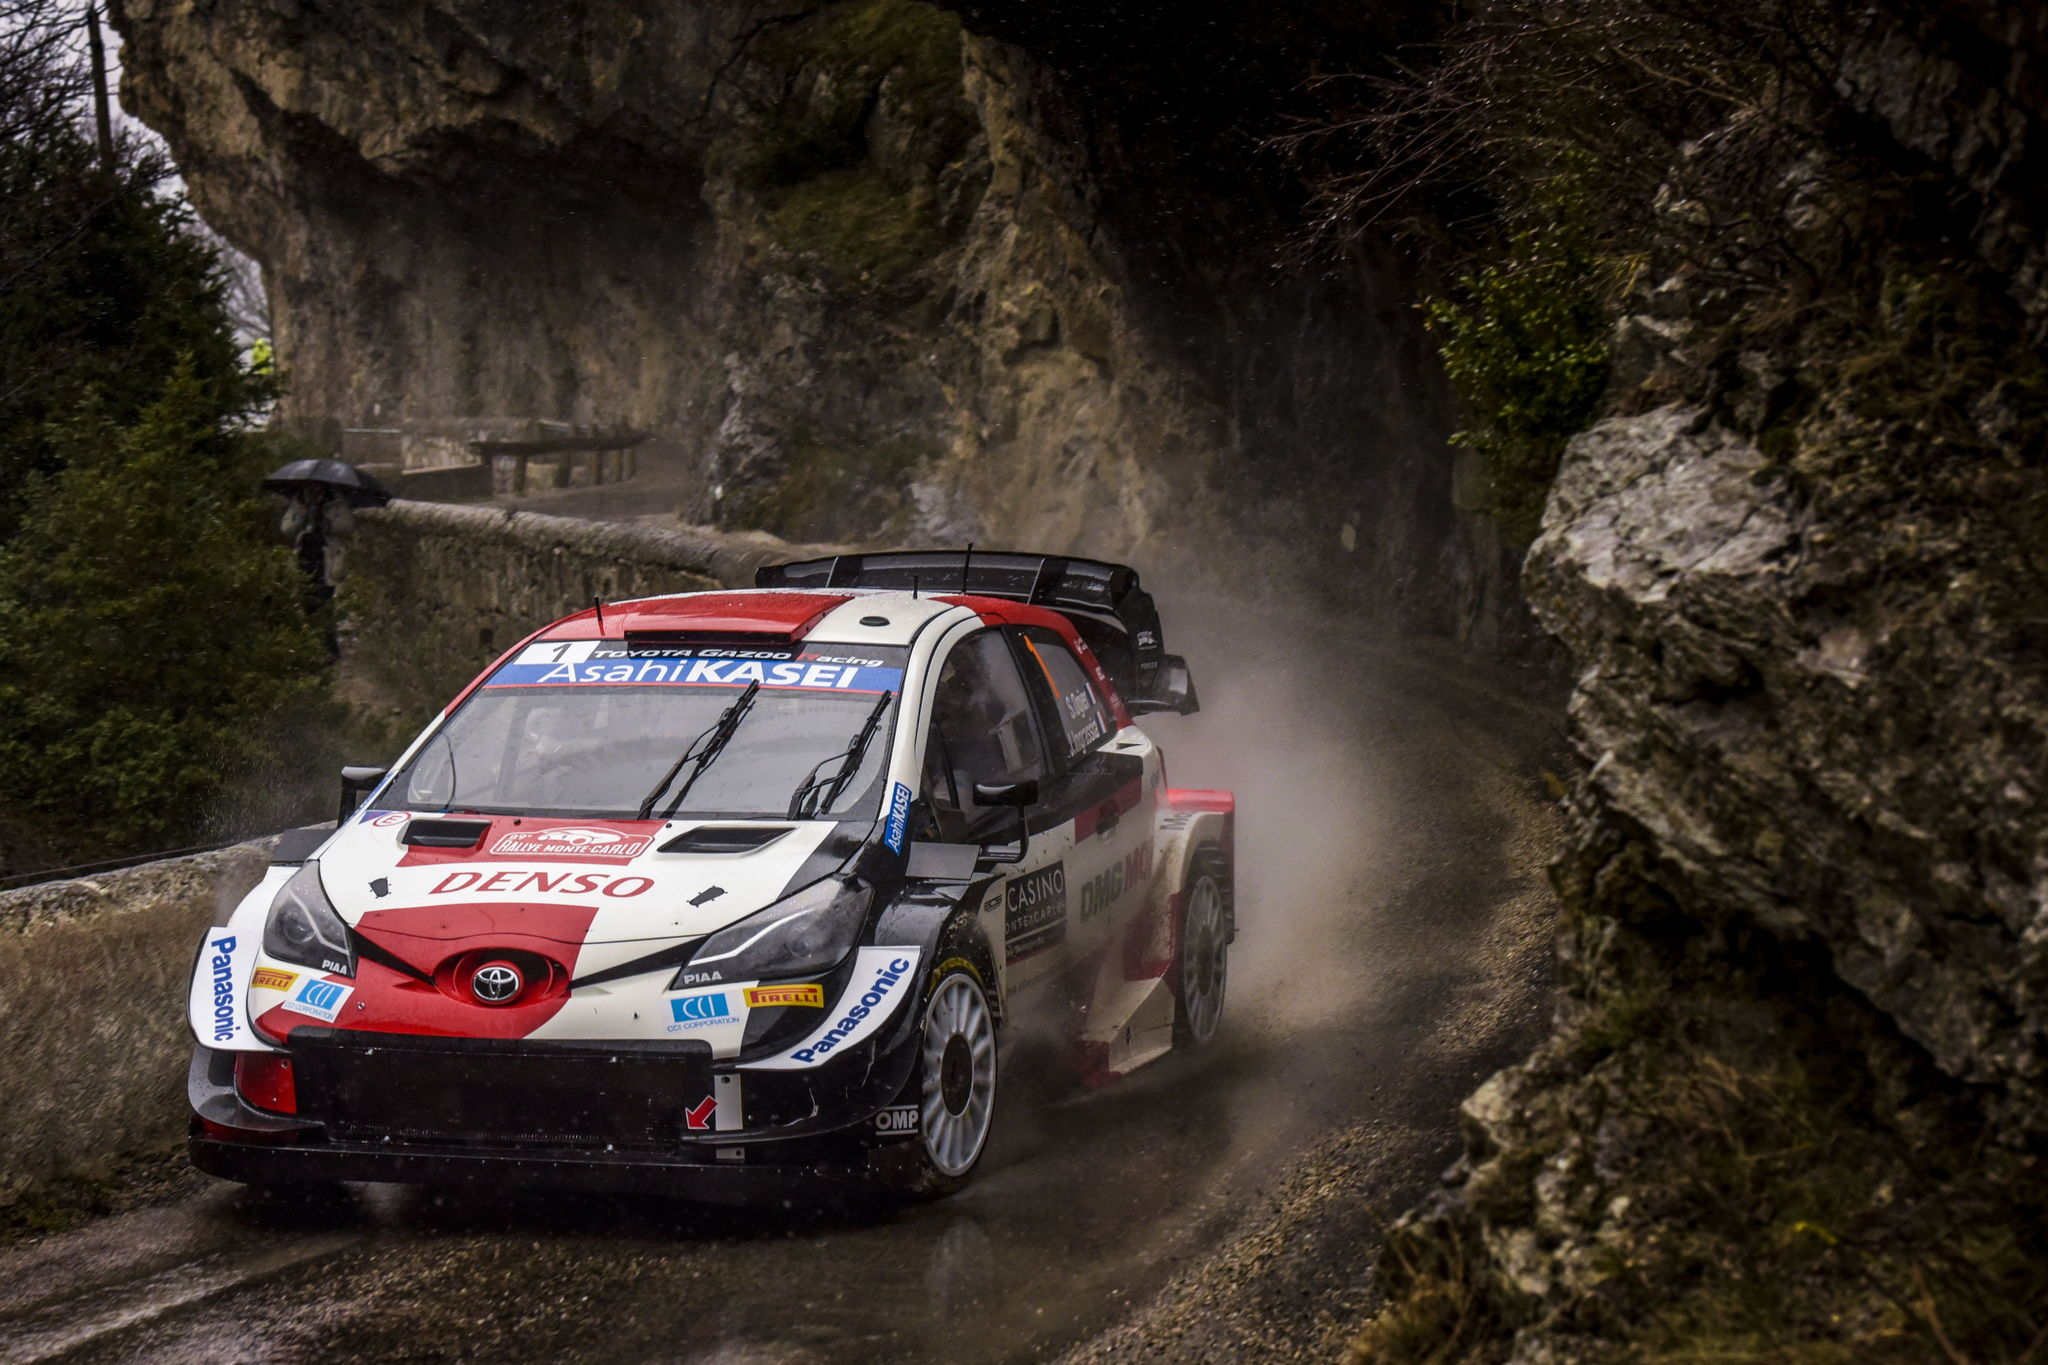 Gap (France), 22/01/2021.- Sebastien lt;HIT gt;Ogier lt;/HIT gt; of France drives his Toyota Yaris WRC during Day 2 of the Rally Monte Carlo 2021, in Gap, France, 22 January 2021. (Francia) EFE/EPA/Reporter Images